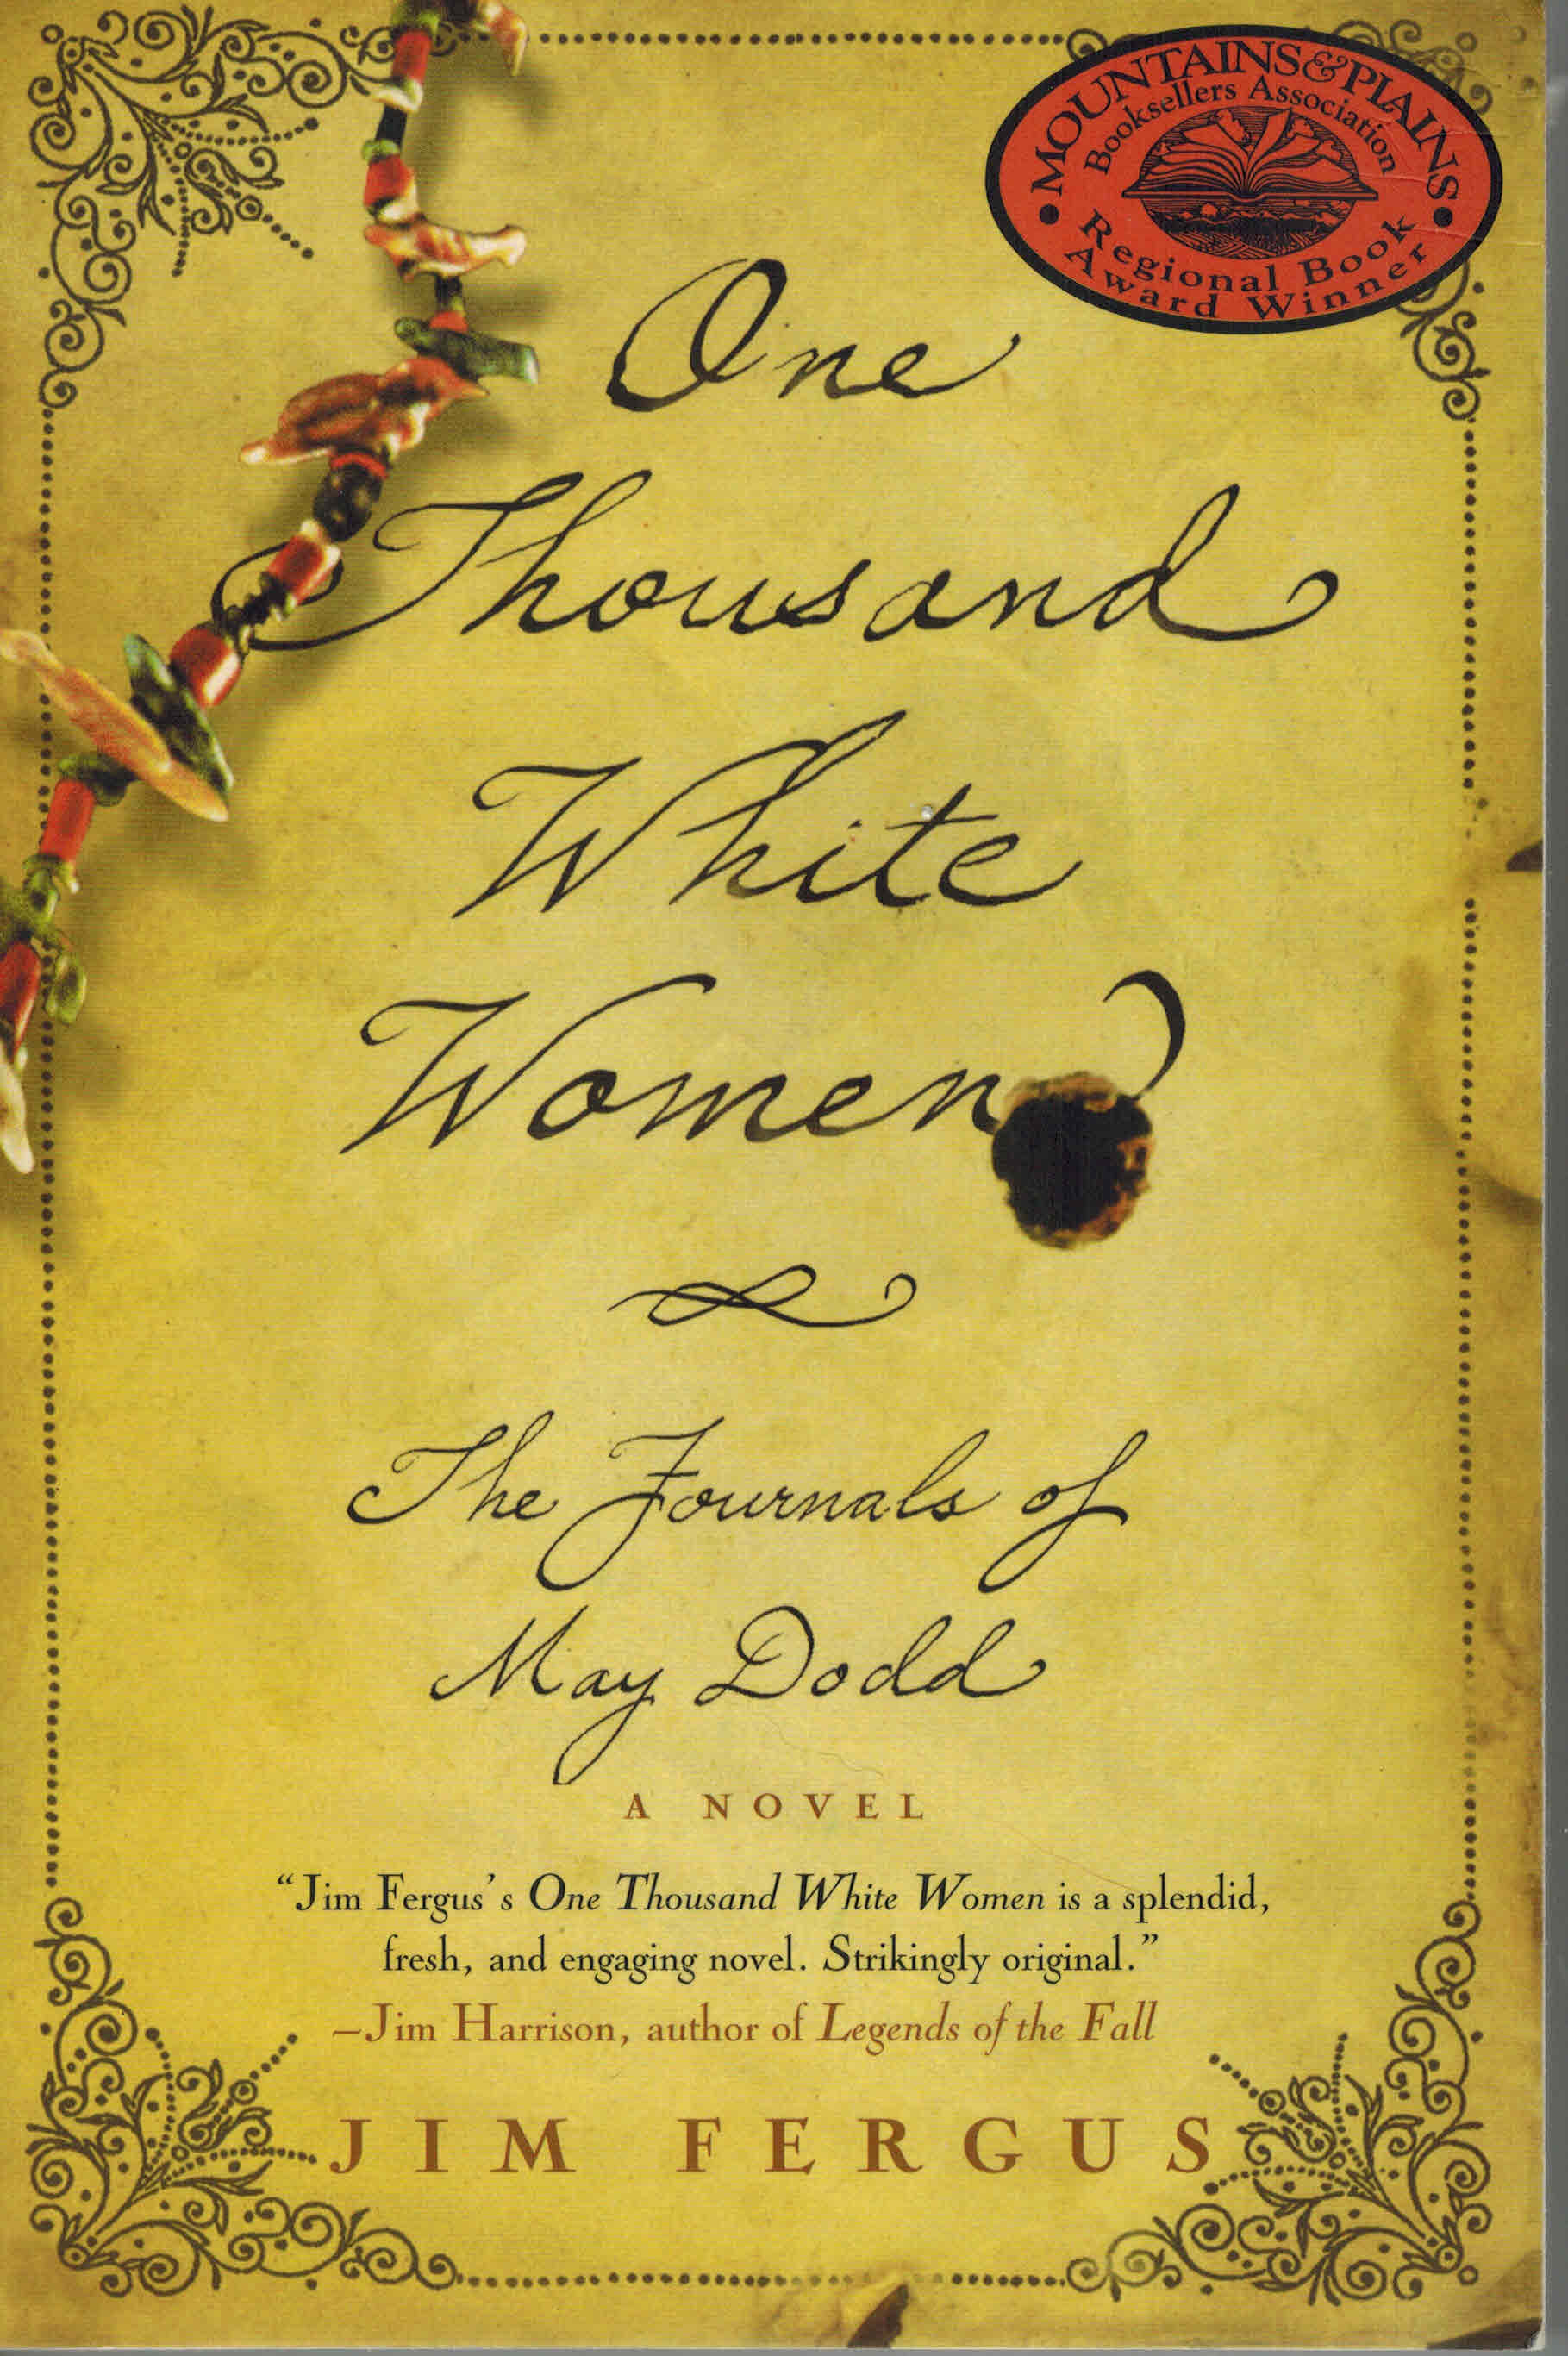 Image for One Thousand White Women: The Journals of May Dodd (One Thousand White Women Series, 1)